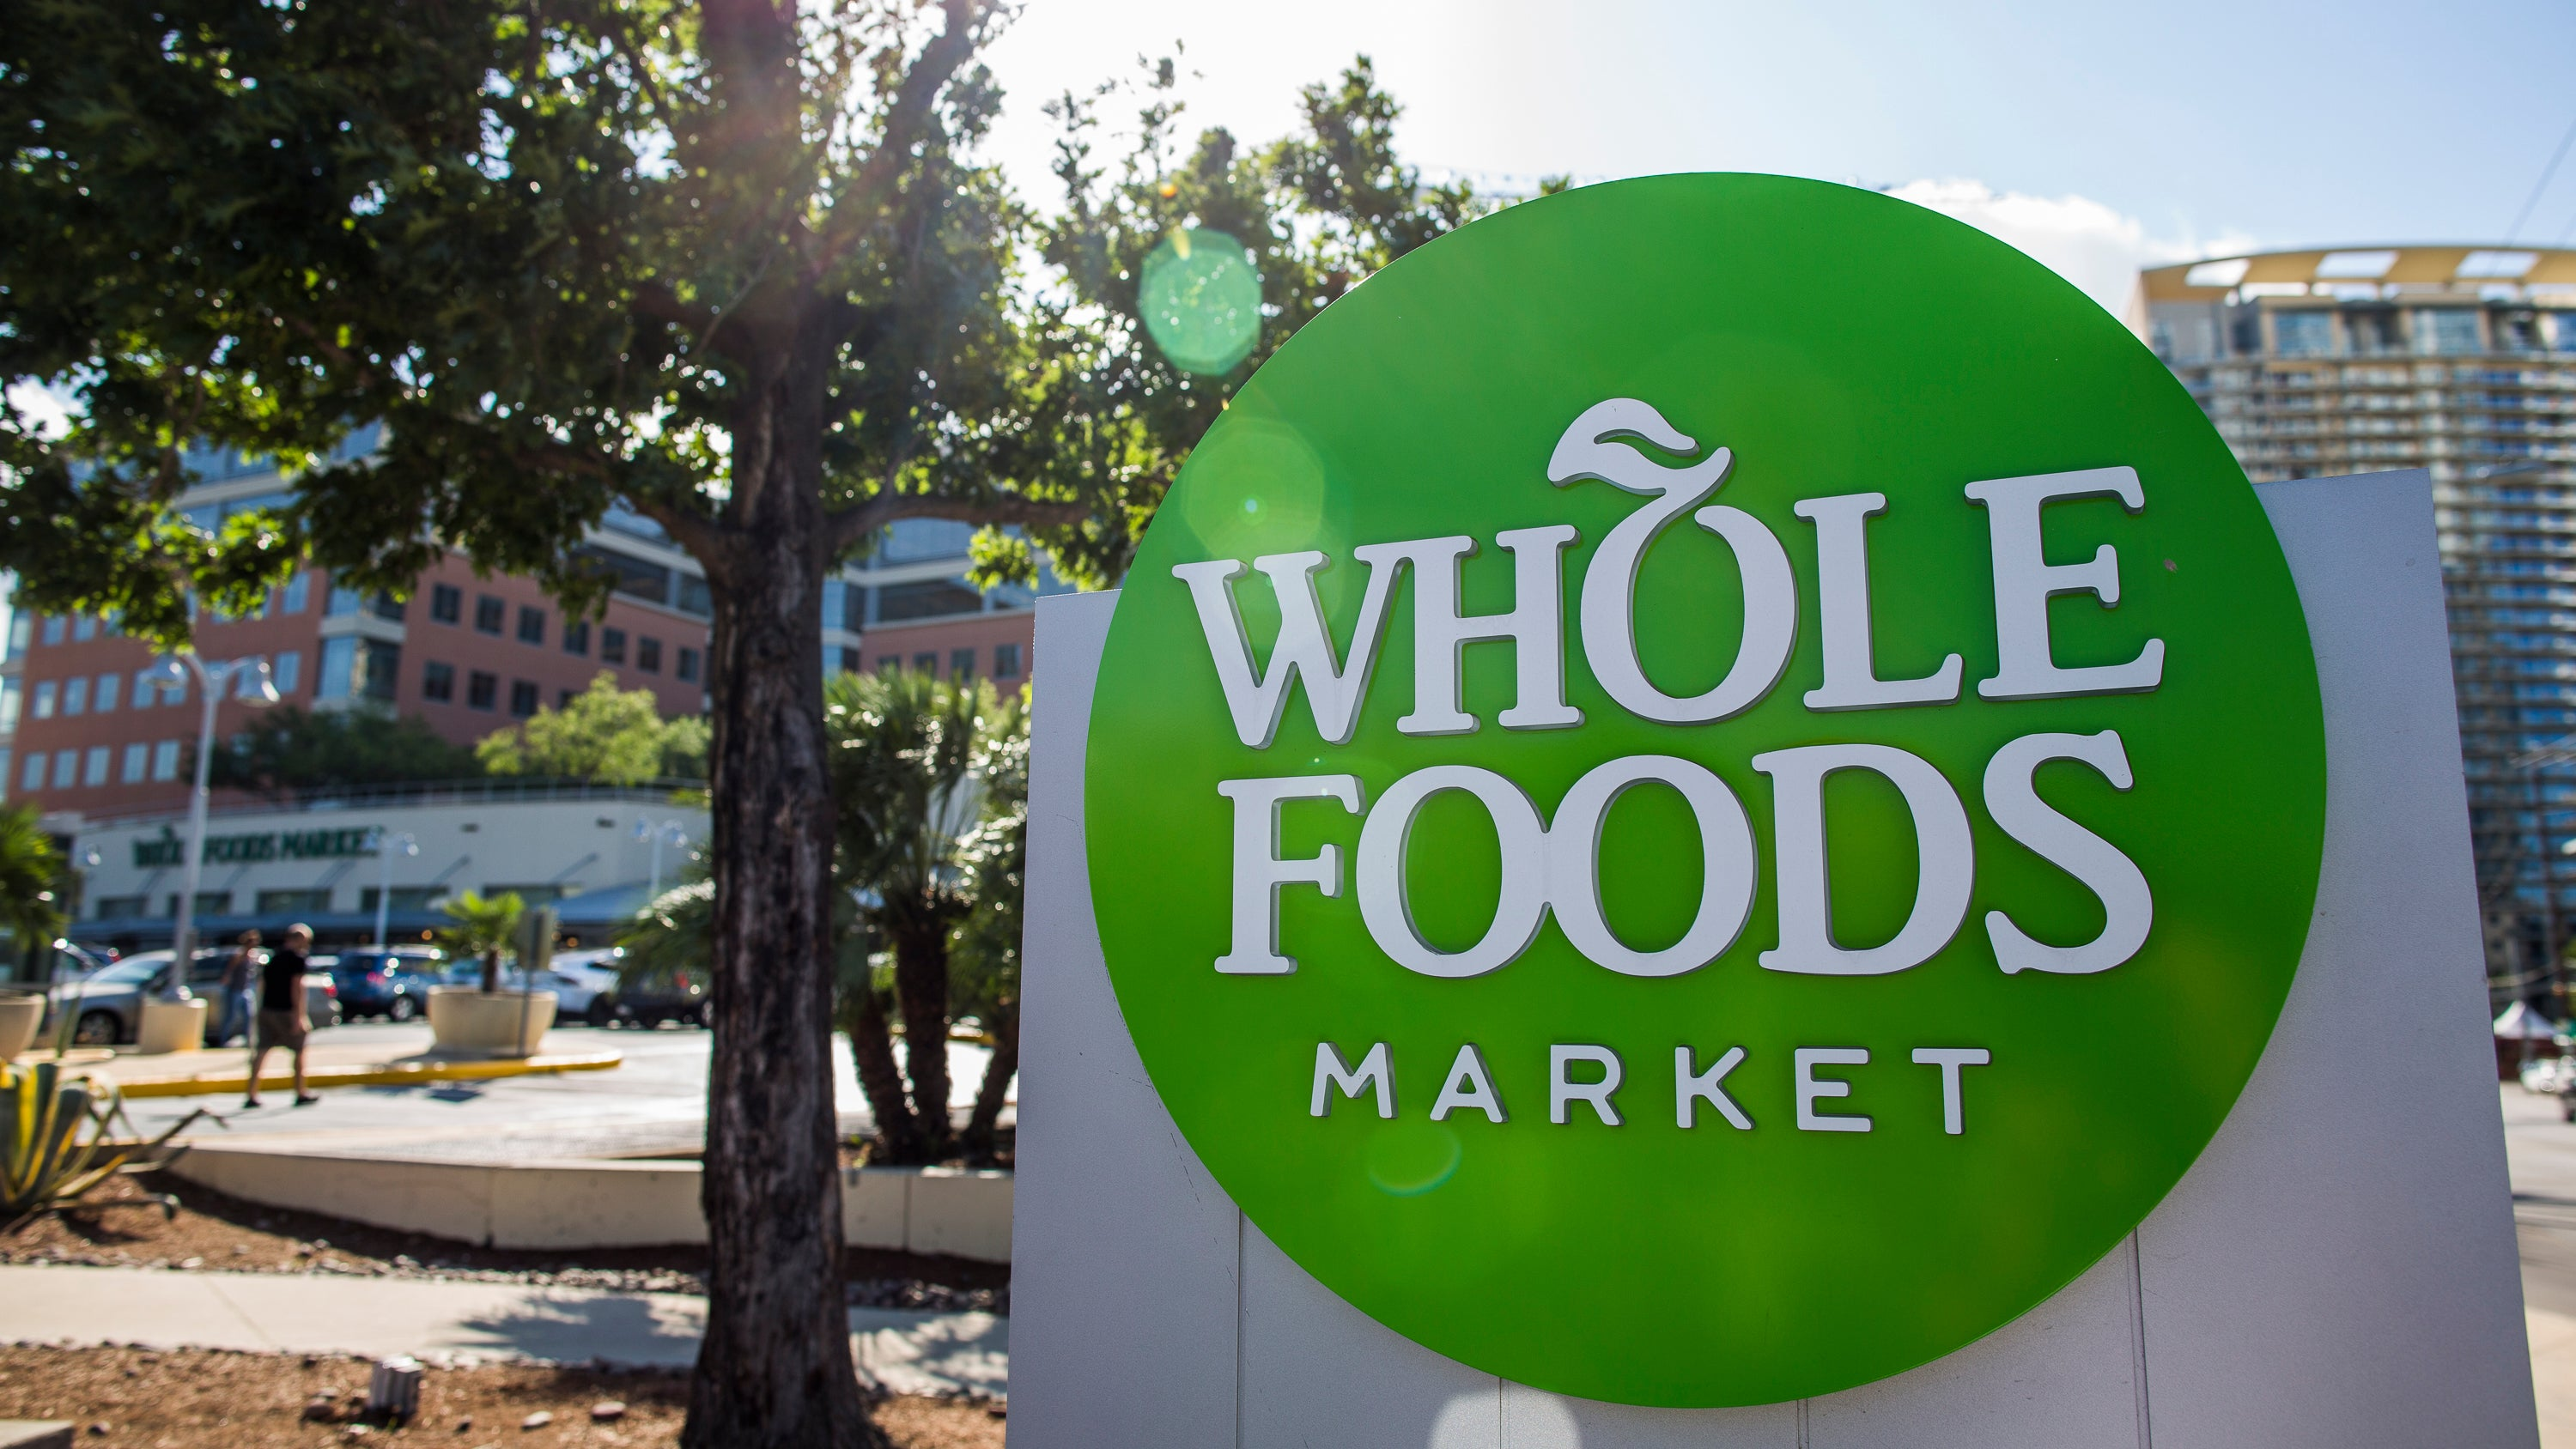 Whole Foods near Allentown involved in data breach